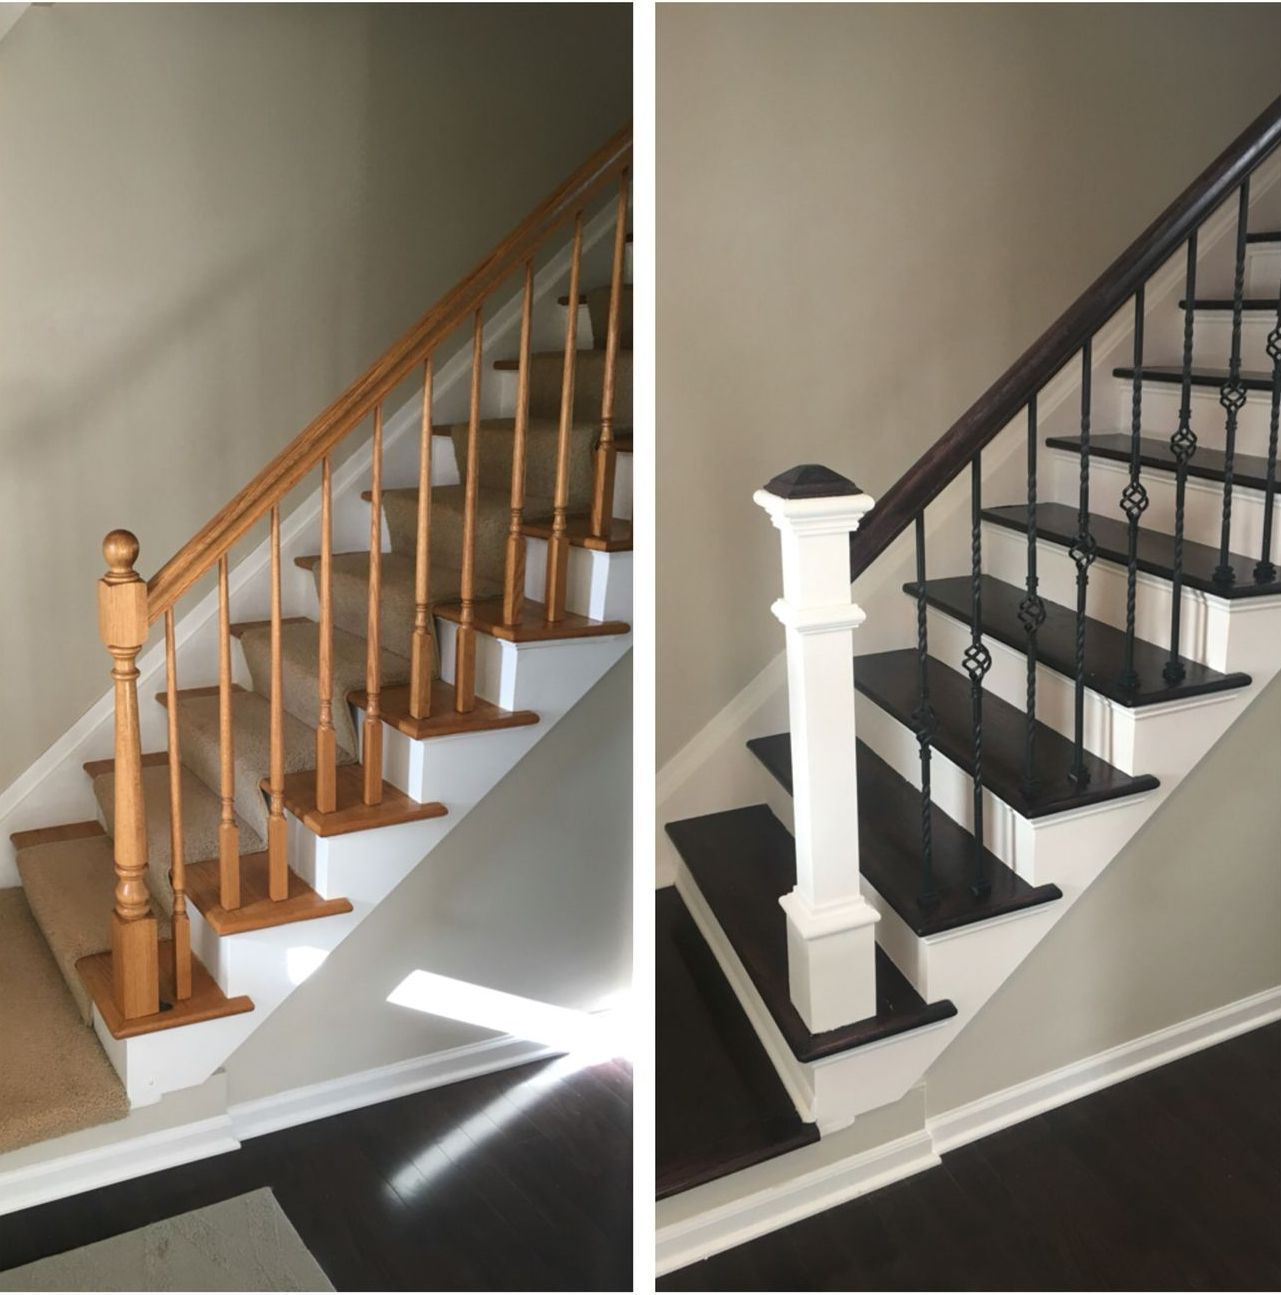 32 Incredible DIY Staircase Makeover Ideas to Refresh the